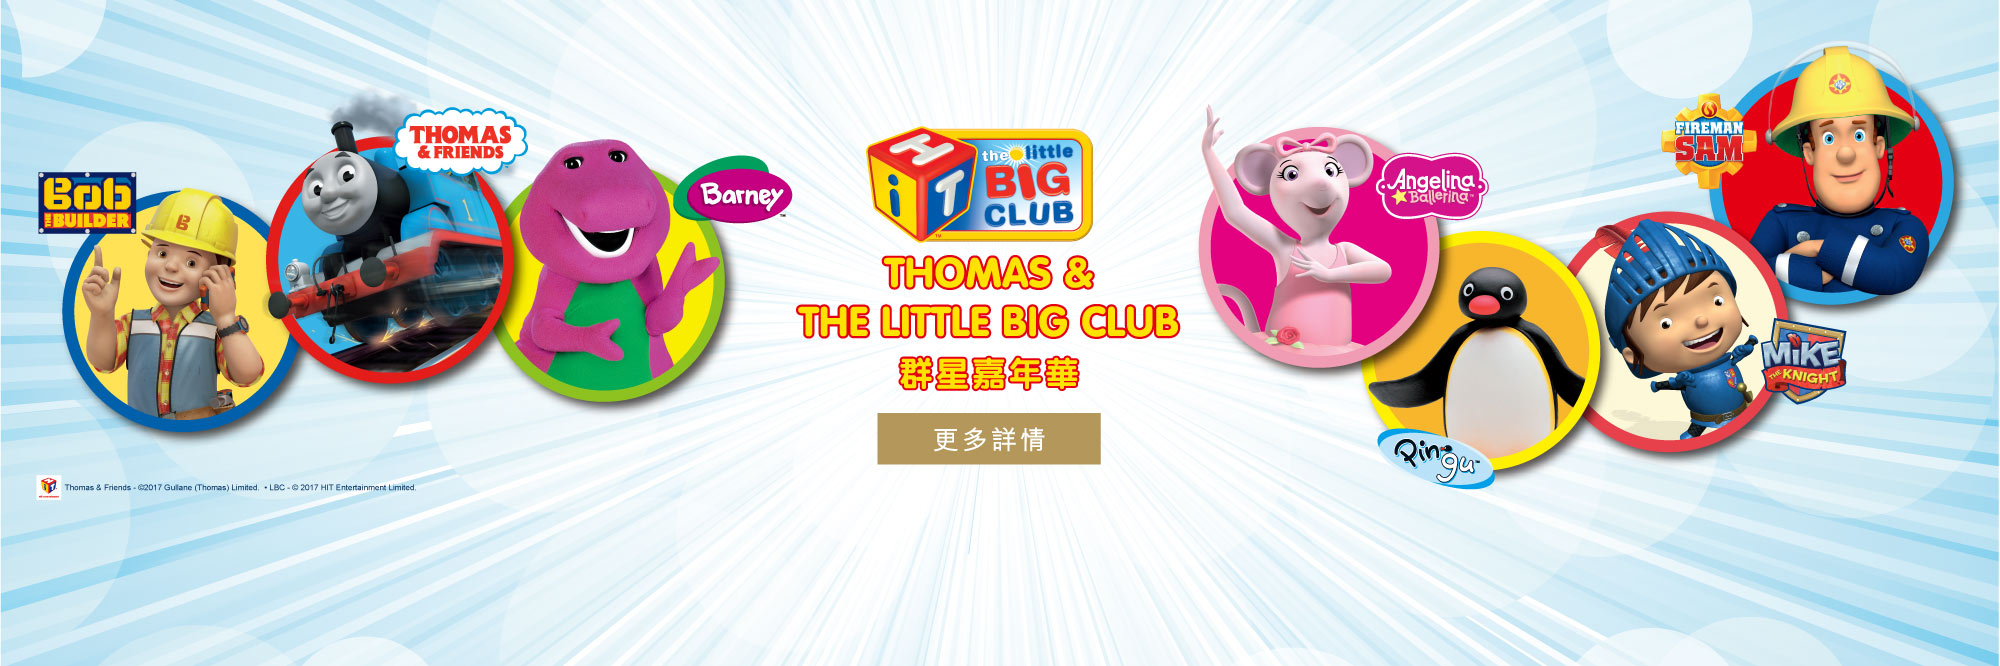 THOMAS & THE LITTLE BIG CLUB 群星嘉年華